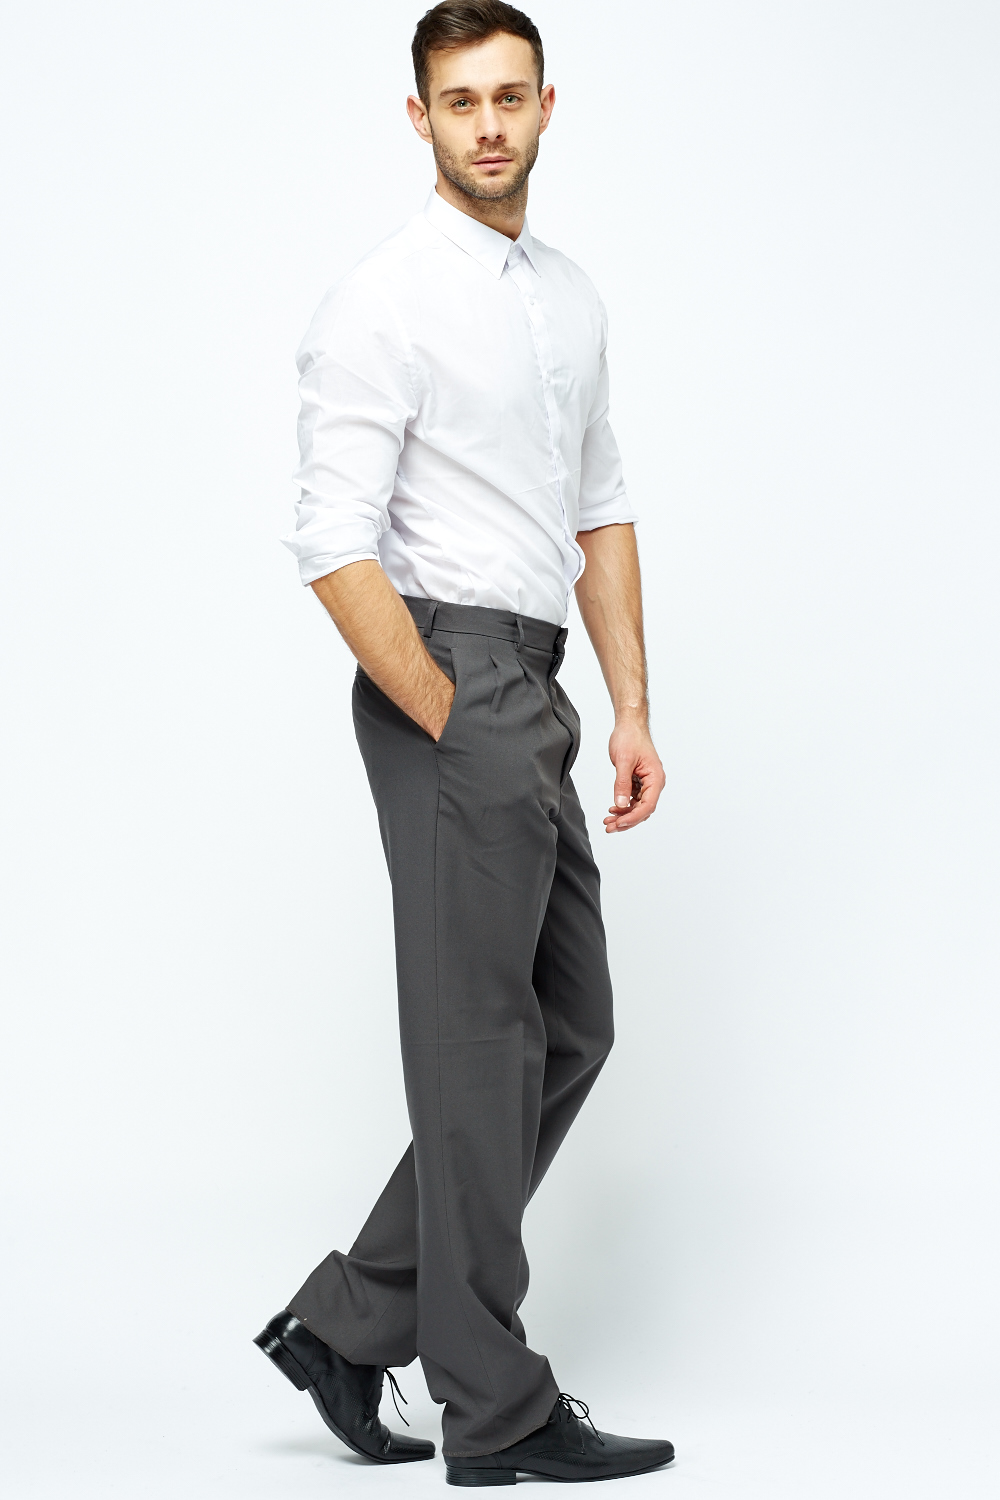 Mens Formal Tailored Trousers - Just £5